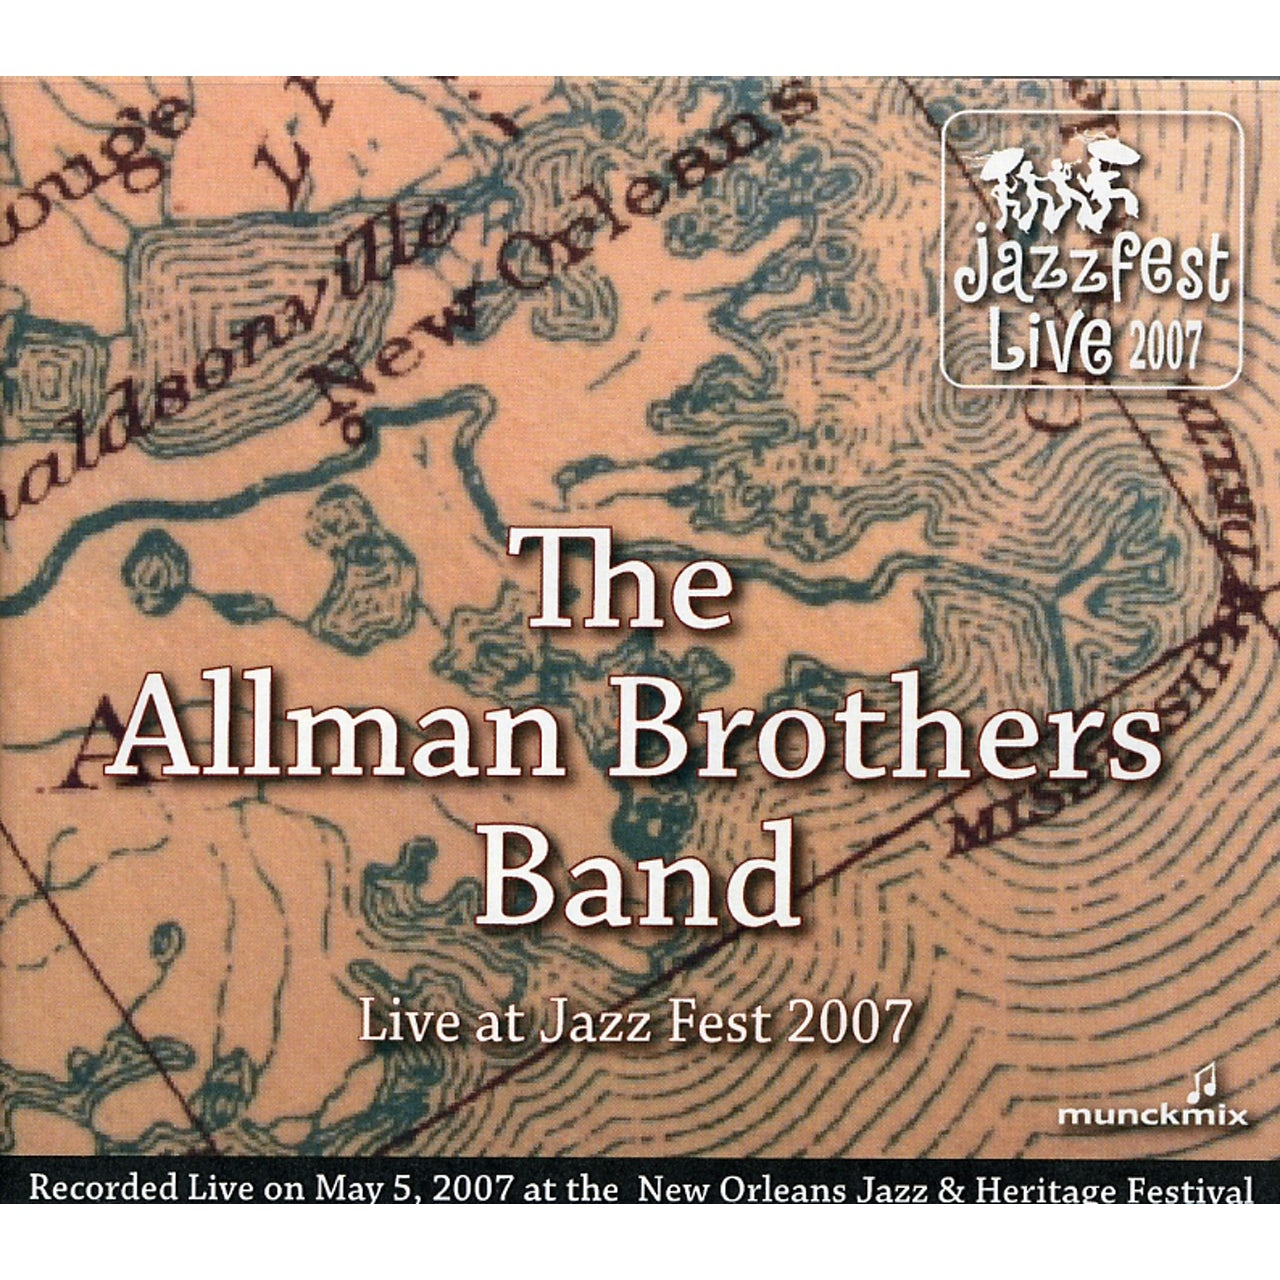 The Allman Brothers Band LIVE AT JAZZ FEST 2007 CD